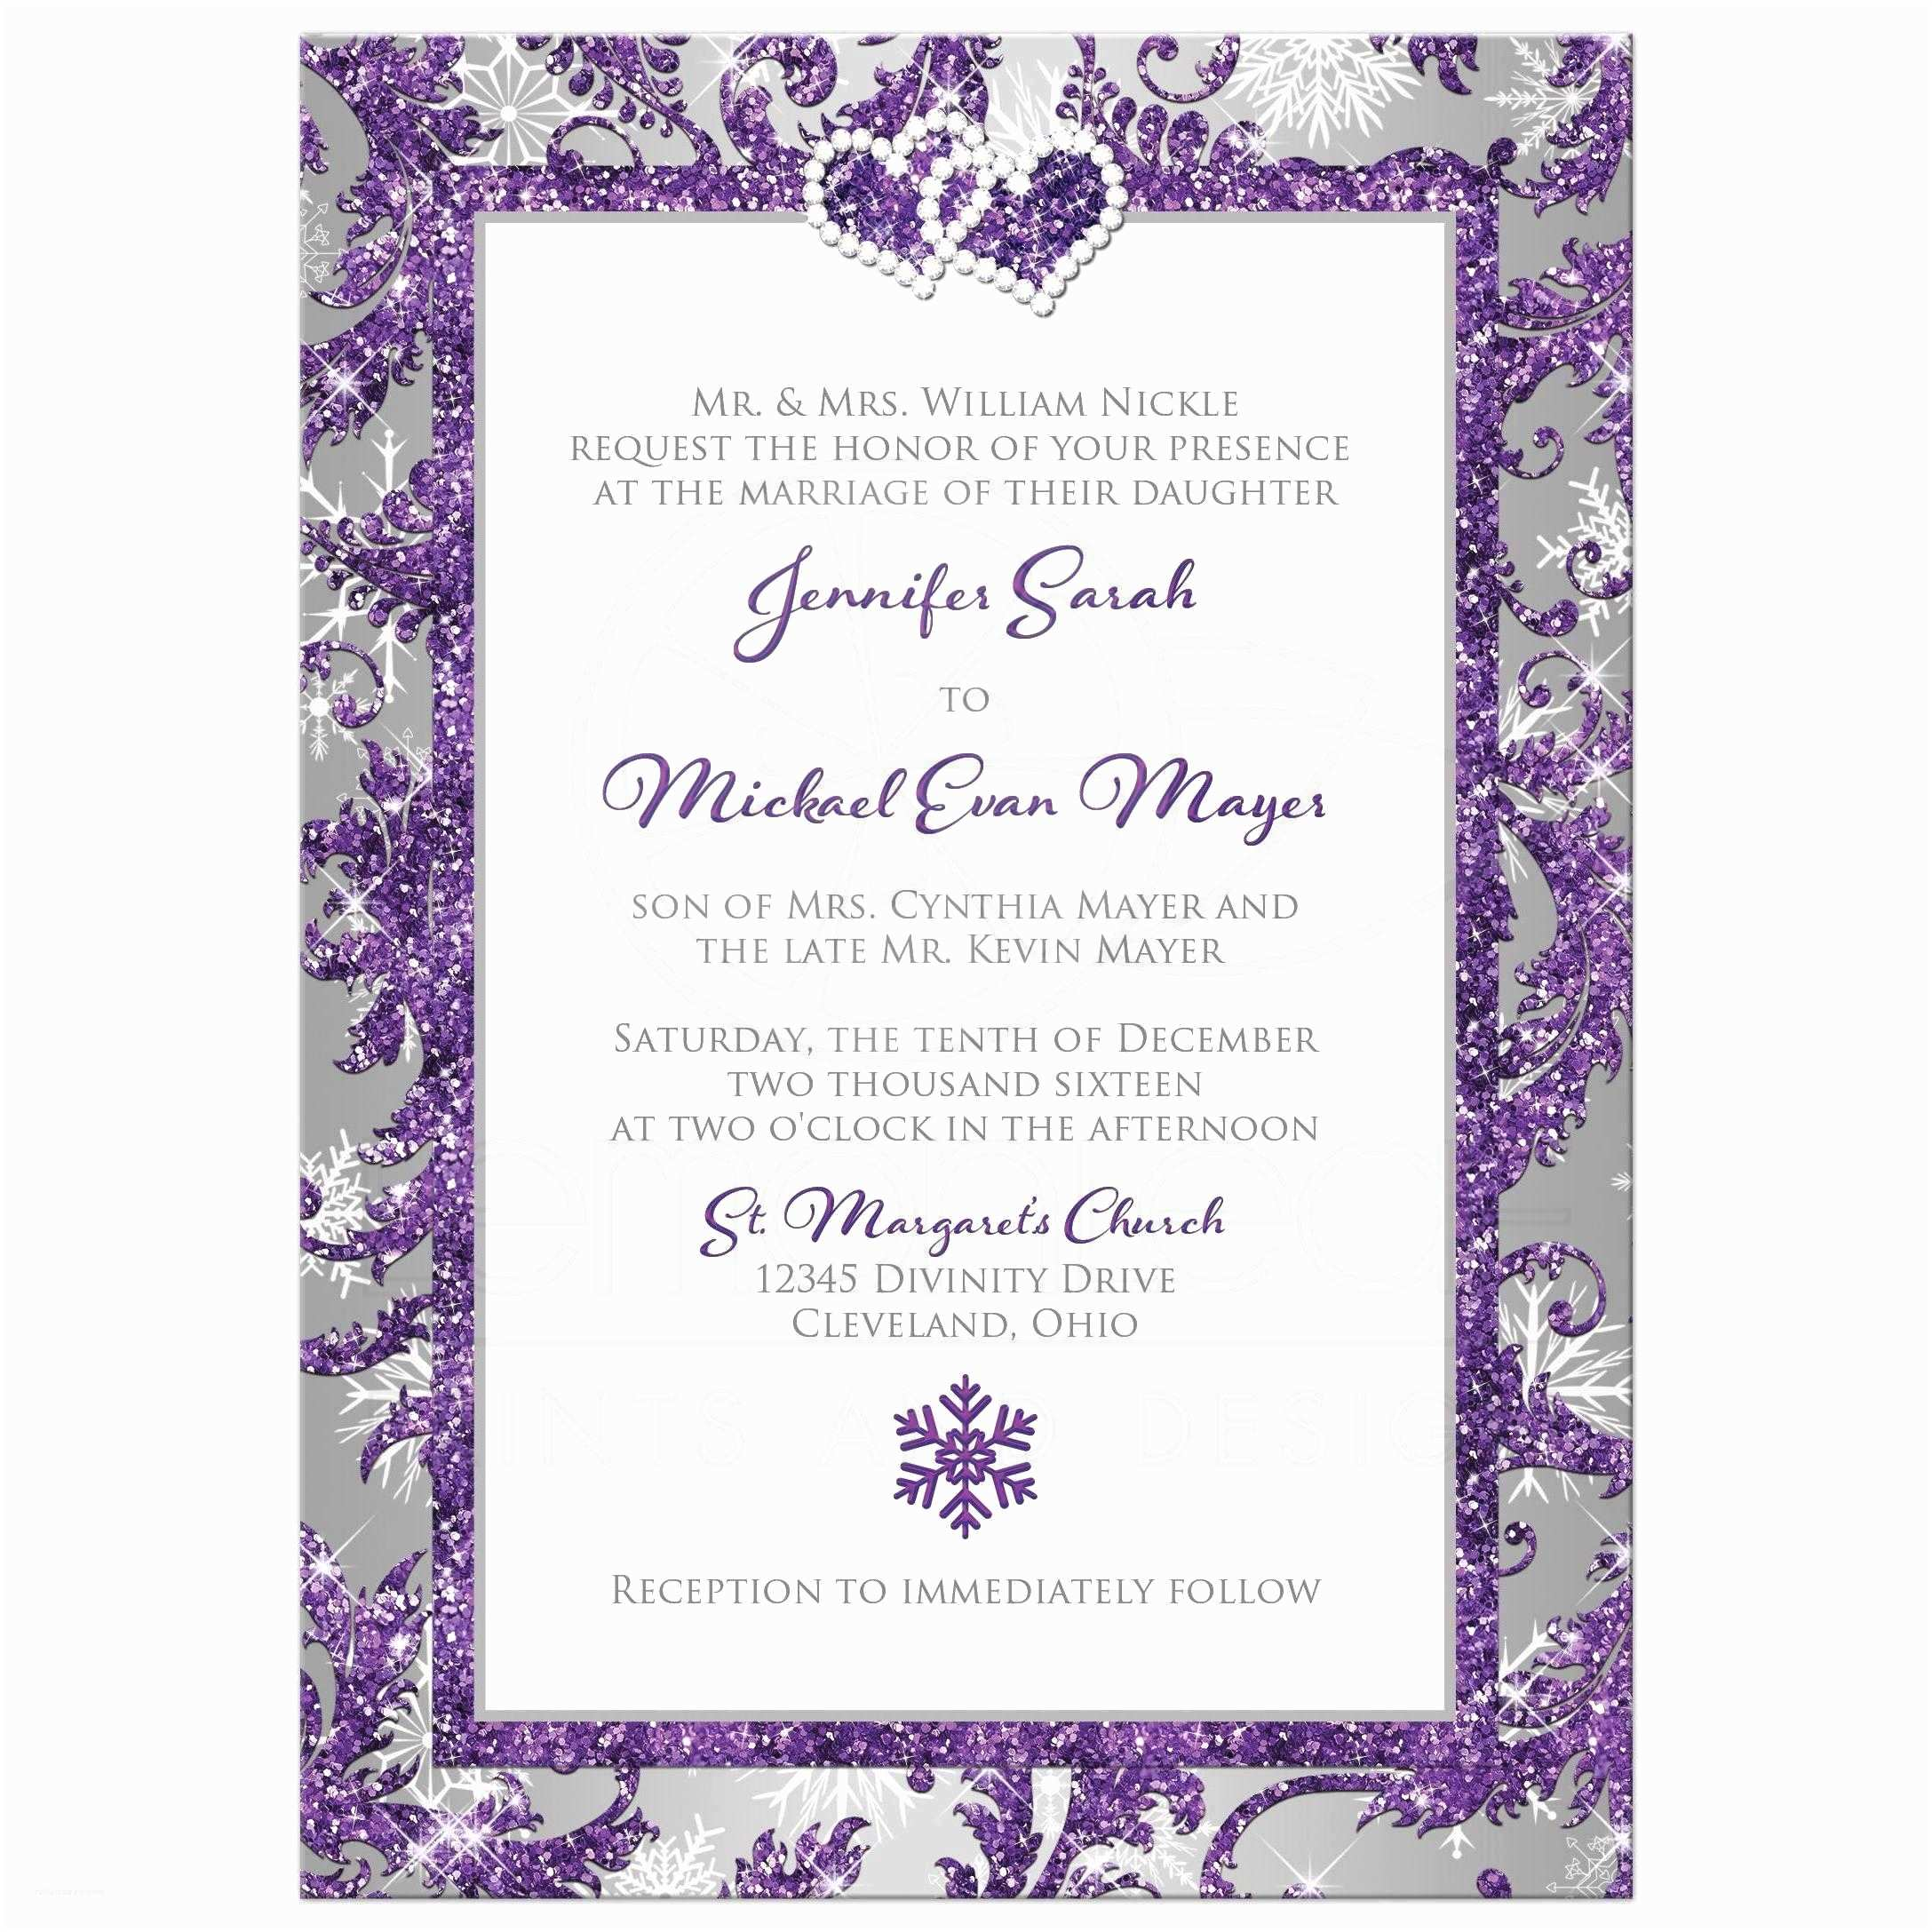 Lilac and Silver Wedding Invitations Winter Wonderland Photo Wedding Invitation